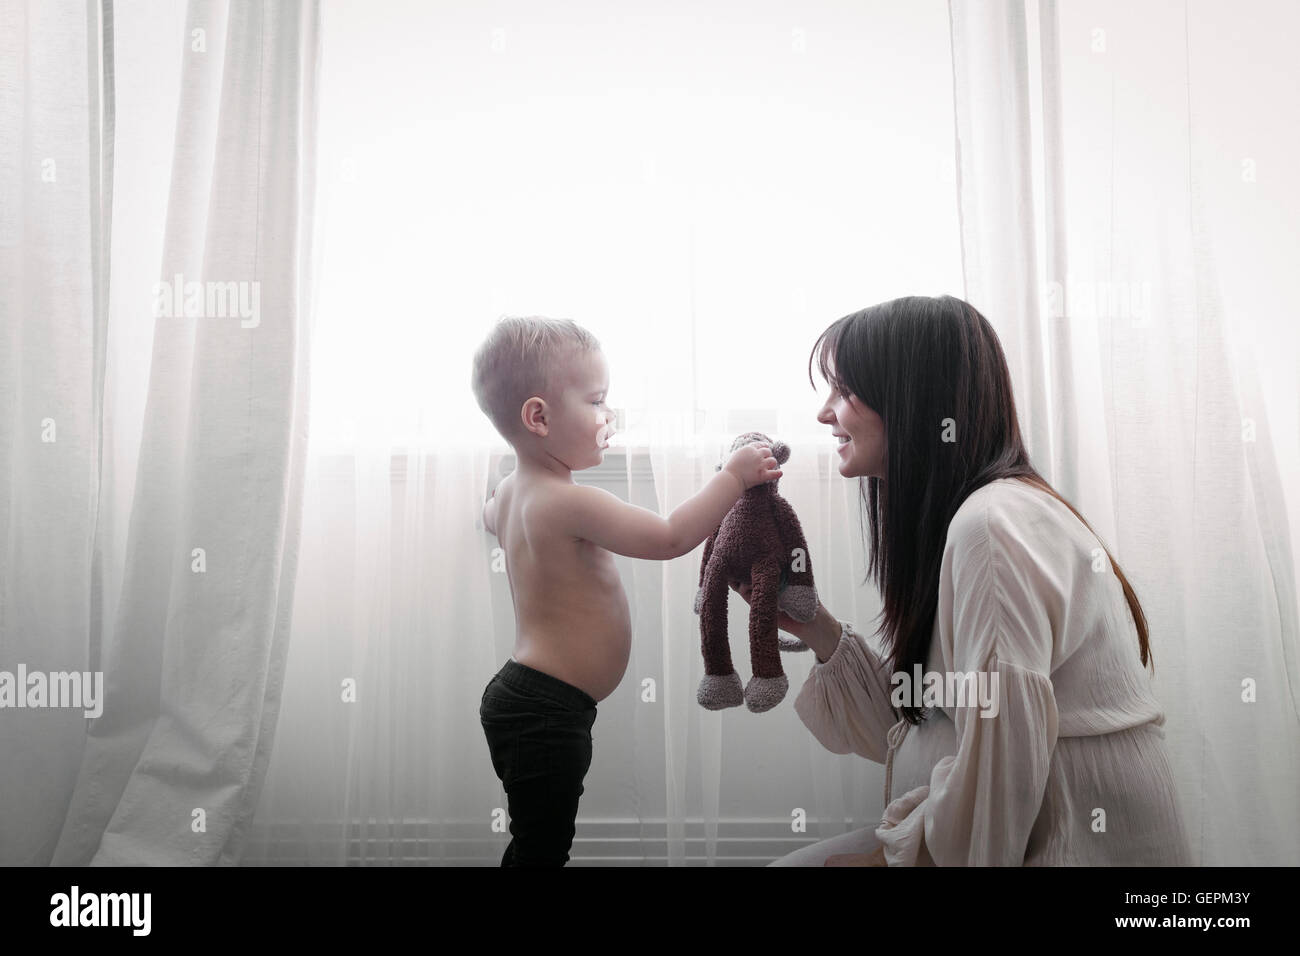 A heavily pregnant woman playing with her young son. - Stock Image